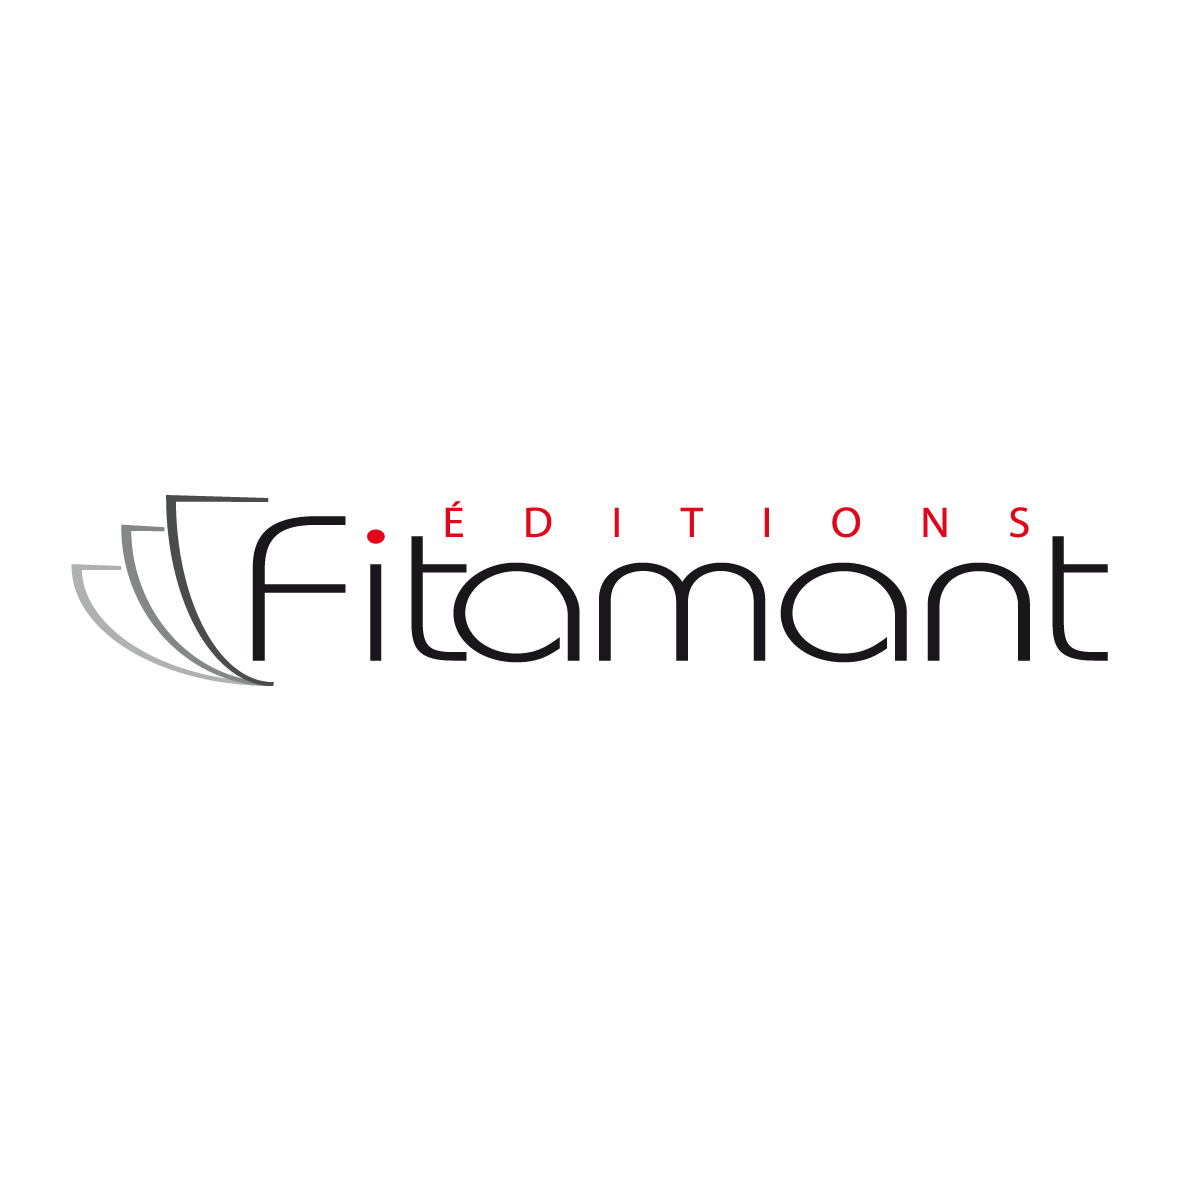 Logo Editions Fitamant-01